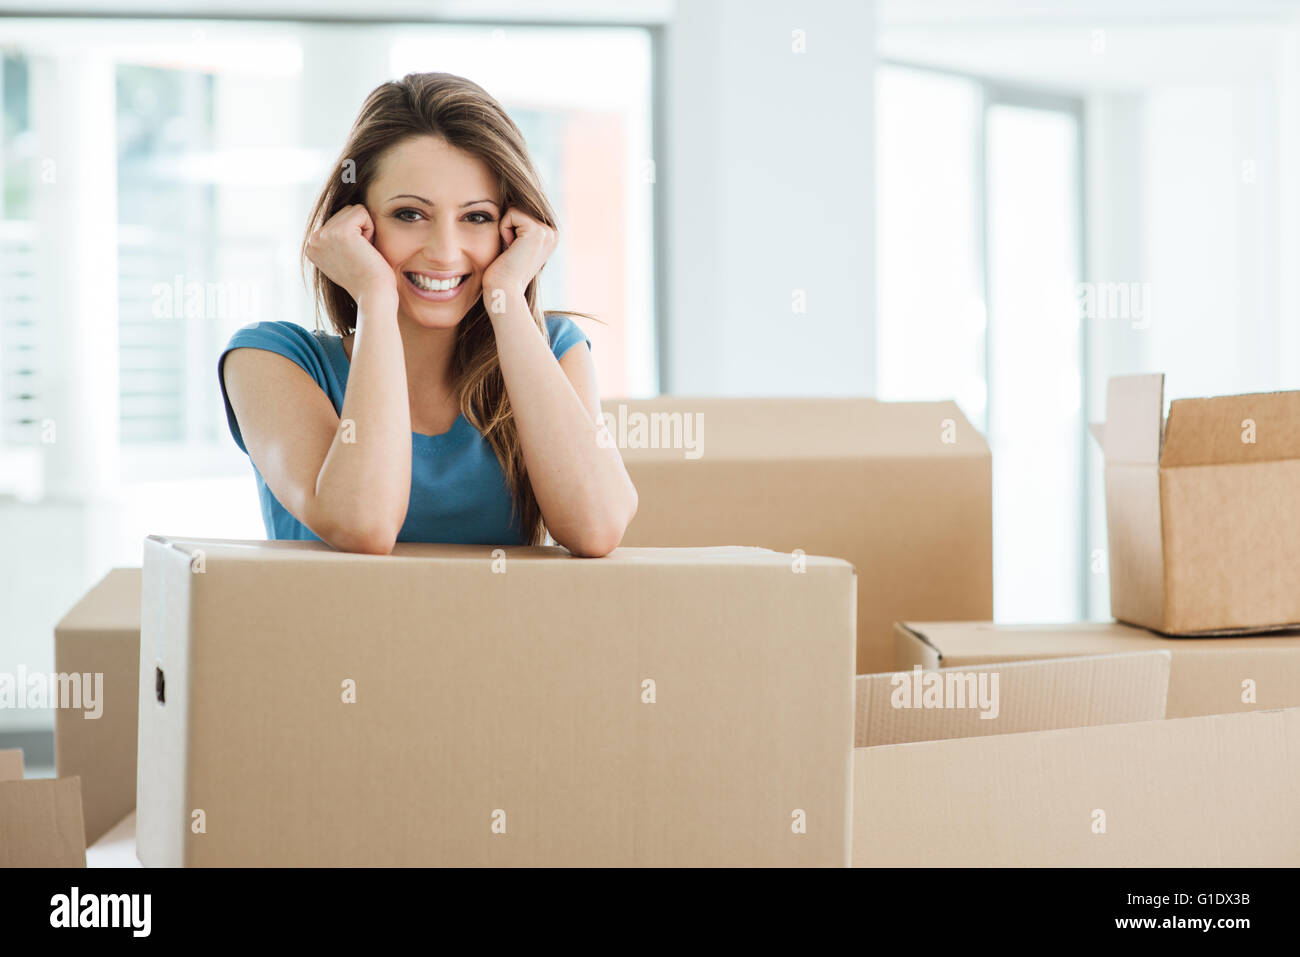 Smiling young woman moving in her new house and leaning on a cardboard box - Stock Image